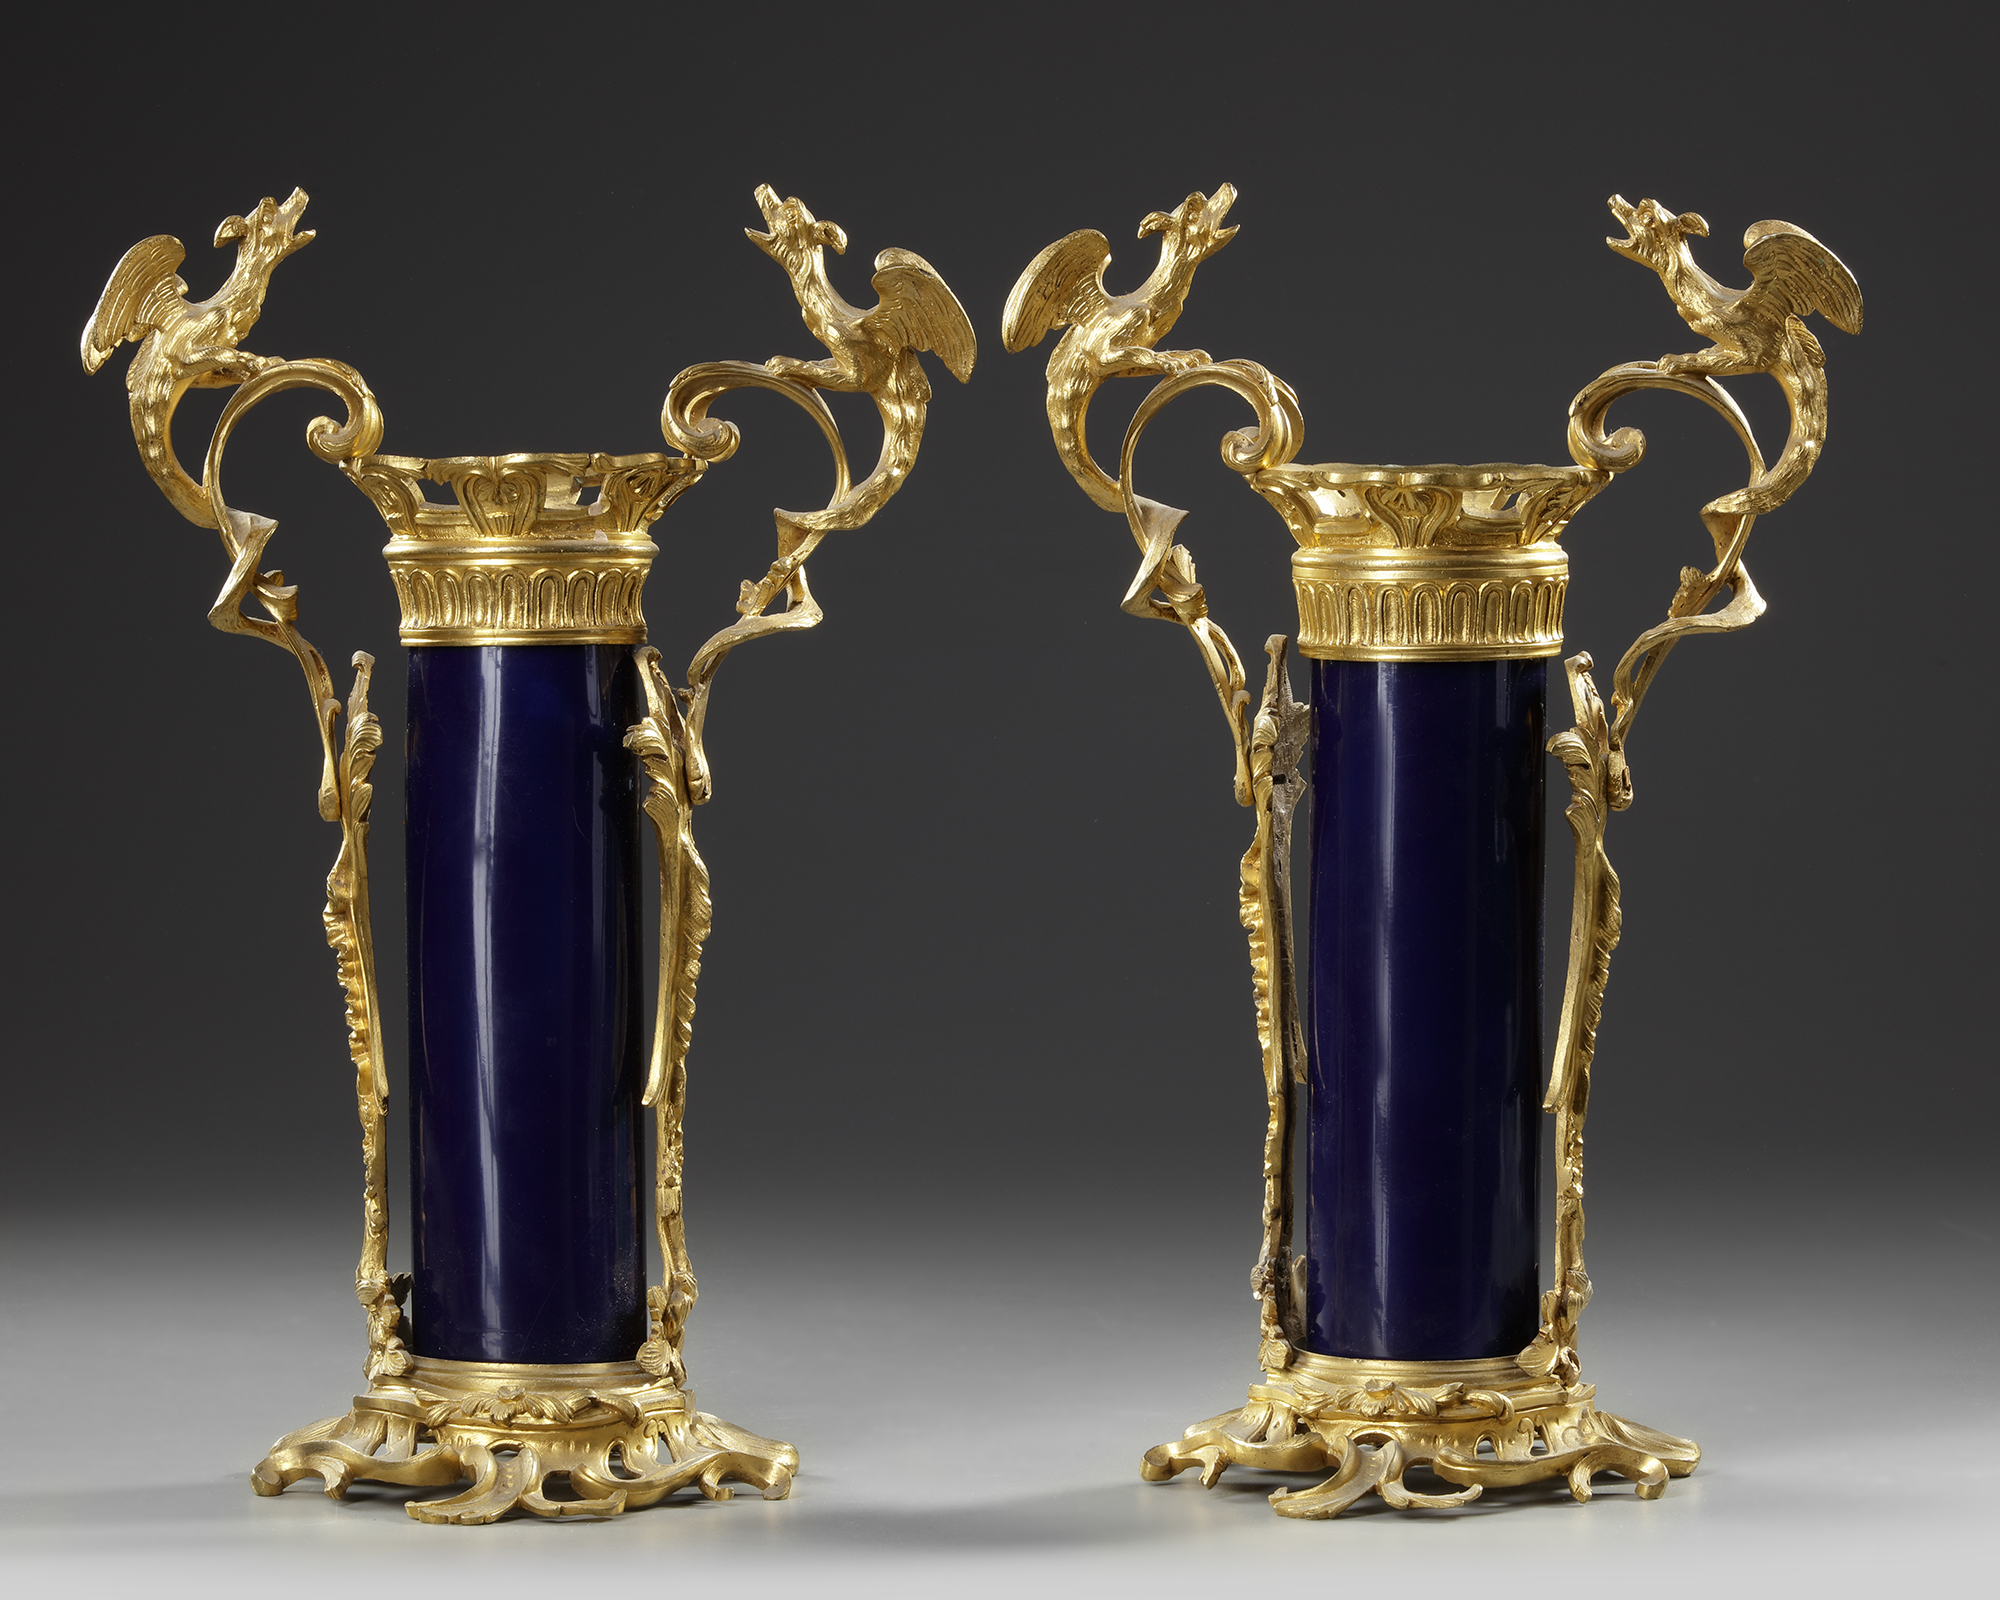 A PAIR OF FRENCH BLUE PORCELAIN VASES, 19TH CENTURY - Image 2 of 3